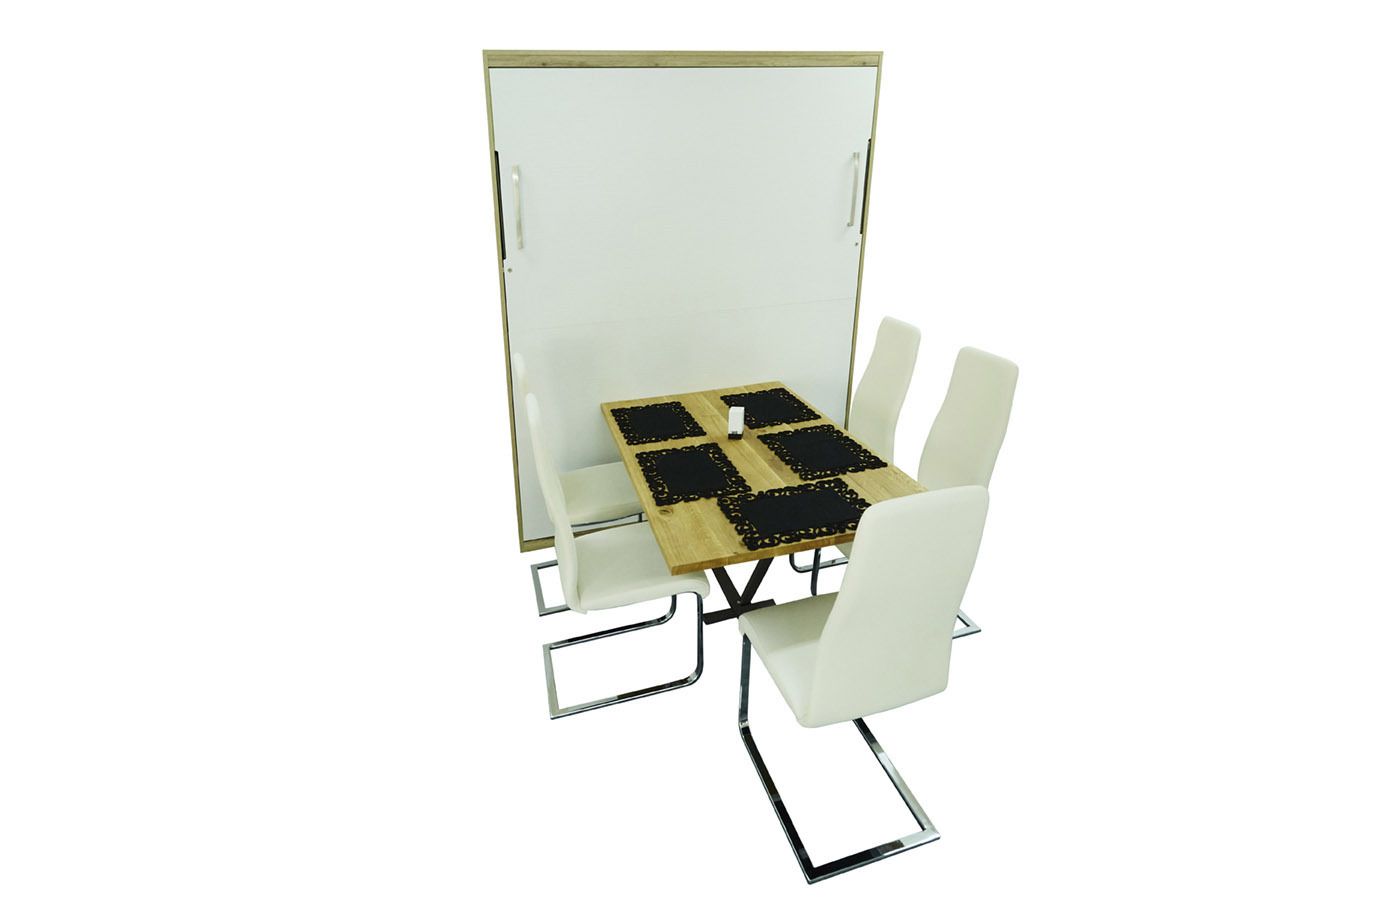 wandbett mit esstisch dinner 160 x 200 cm in wei nussbaum. Black Bedroom Furniture Sets. Home Design Ideas